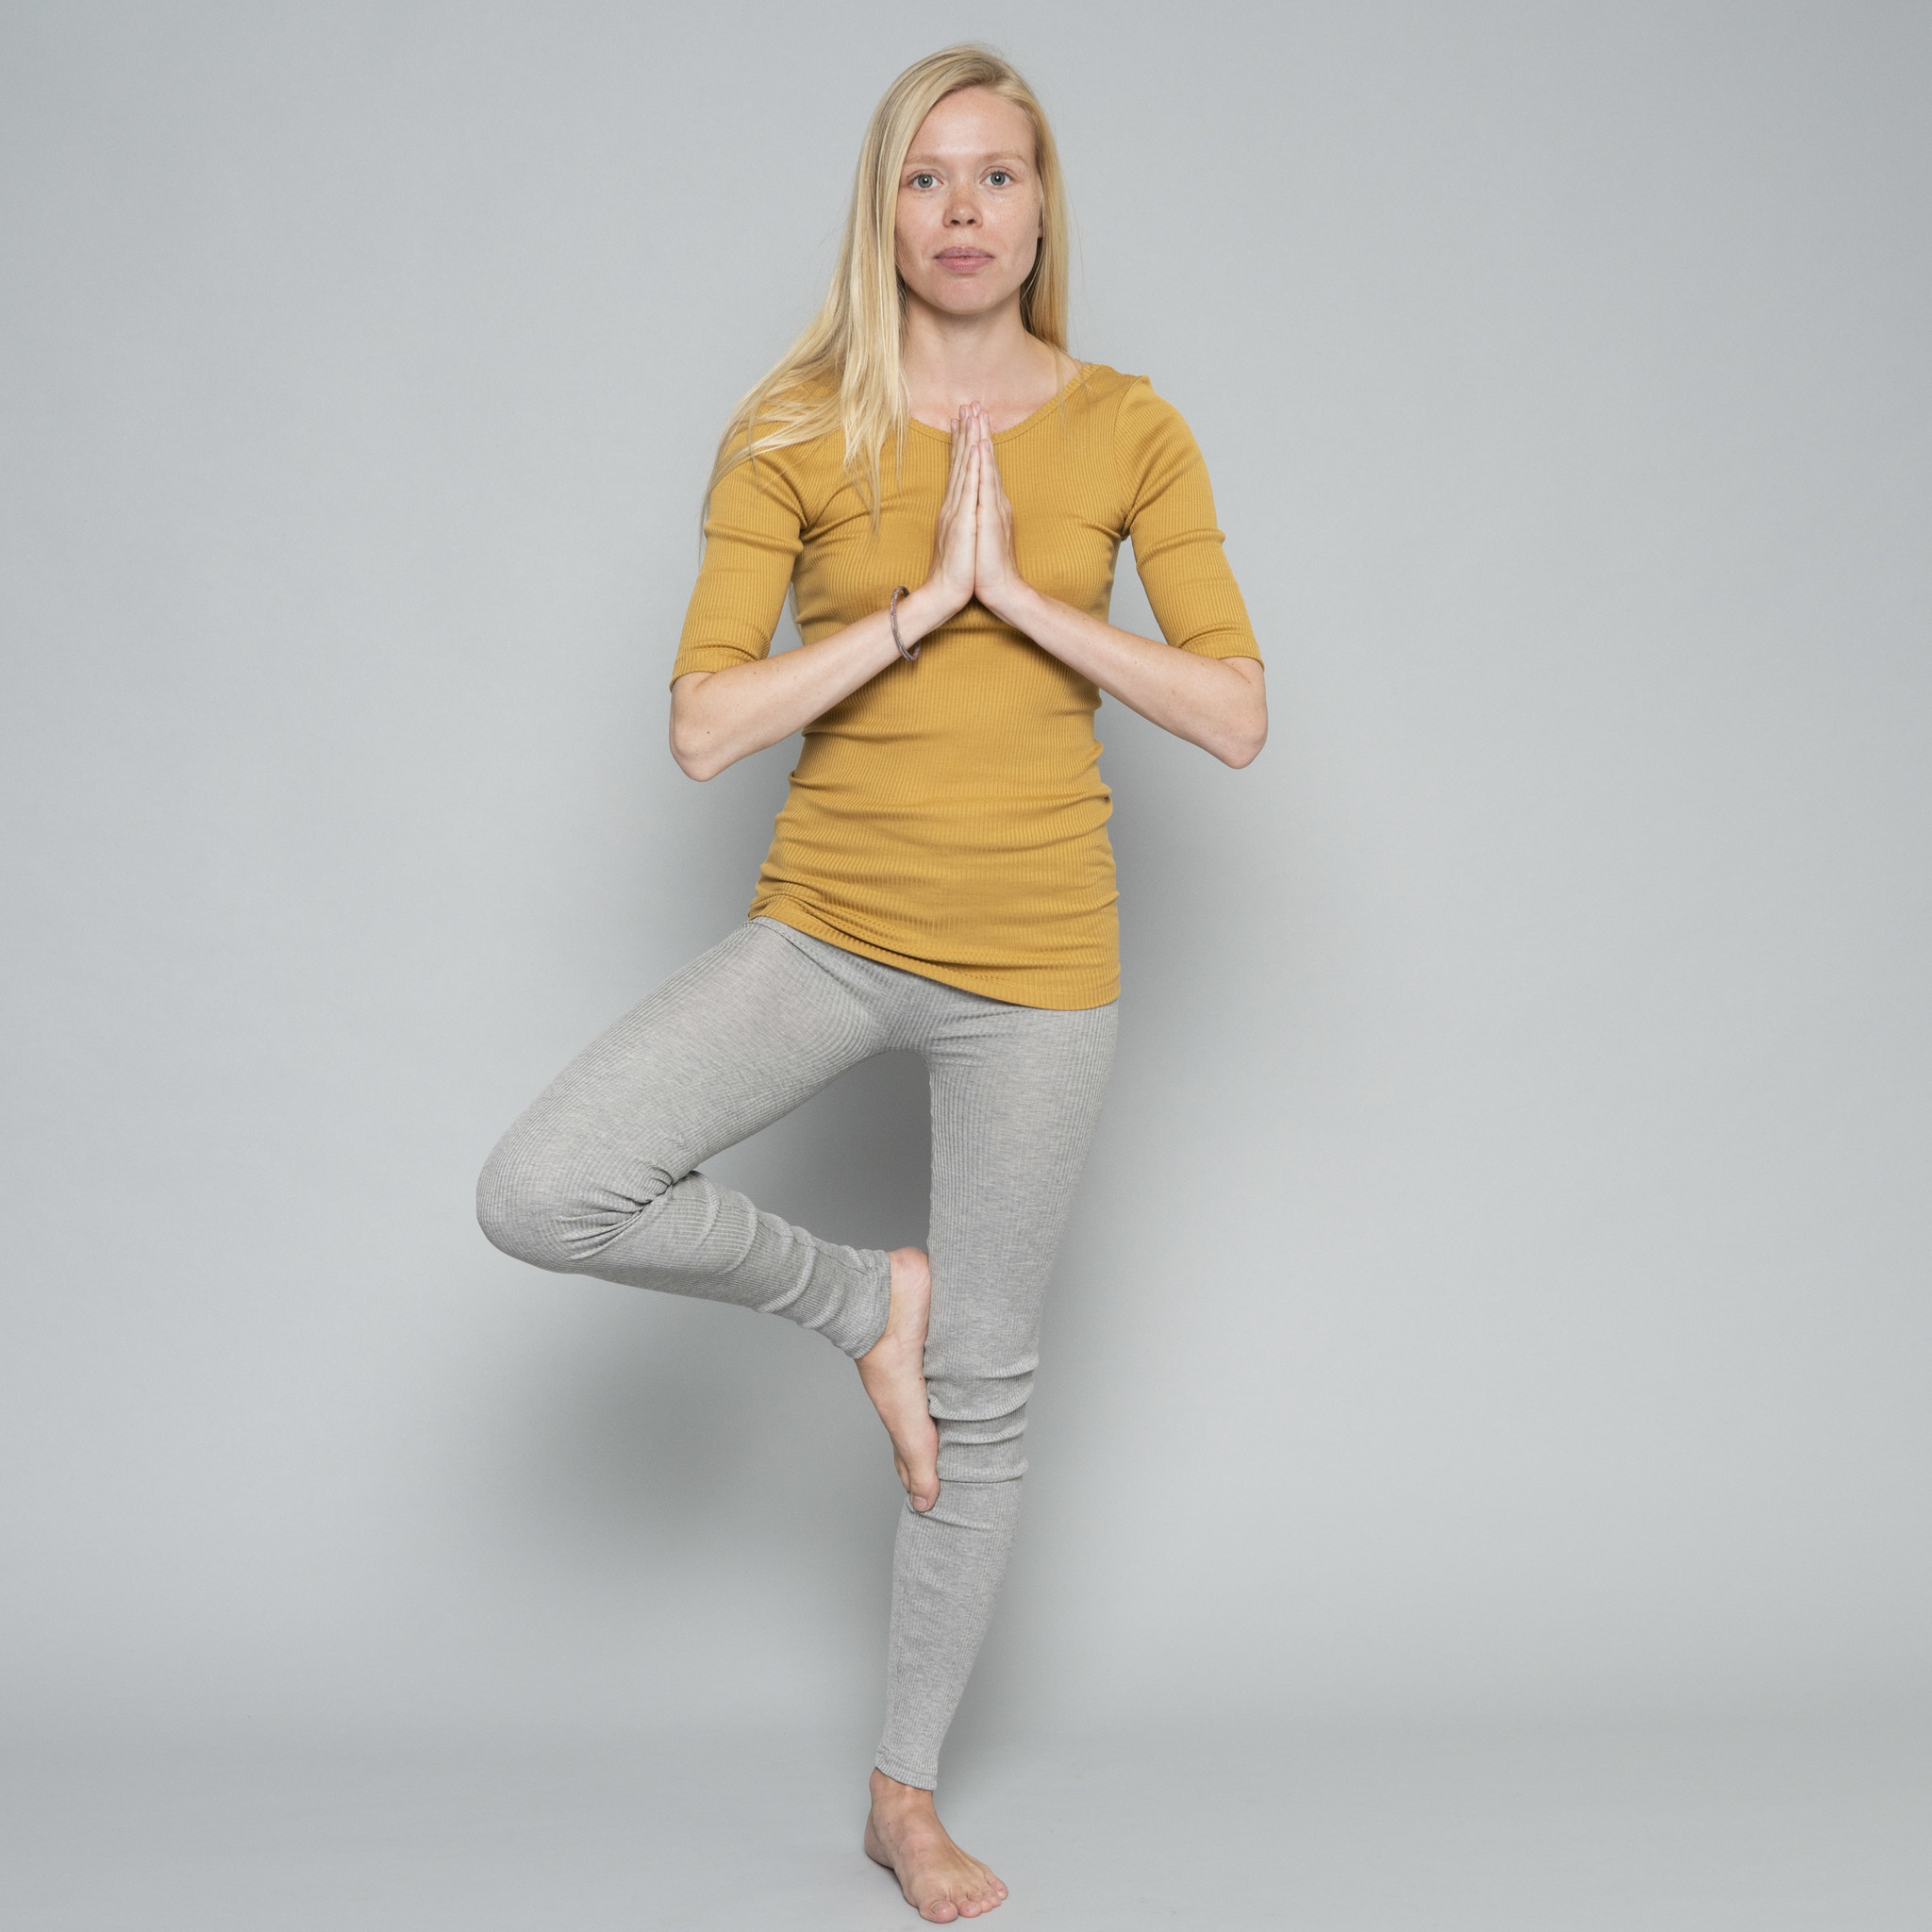 Minimalisma women's shirt GYM 3/4 sleeves and low back - fine rib - 70% silk - golden leaf - S/M and M/L